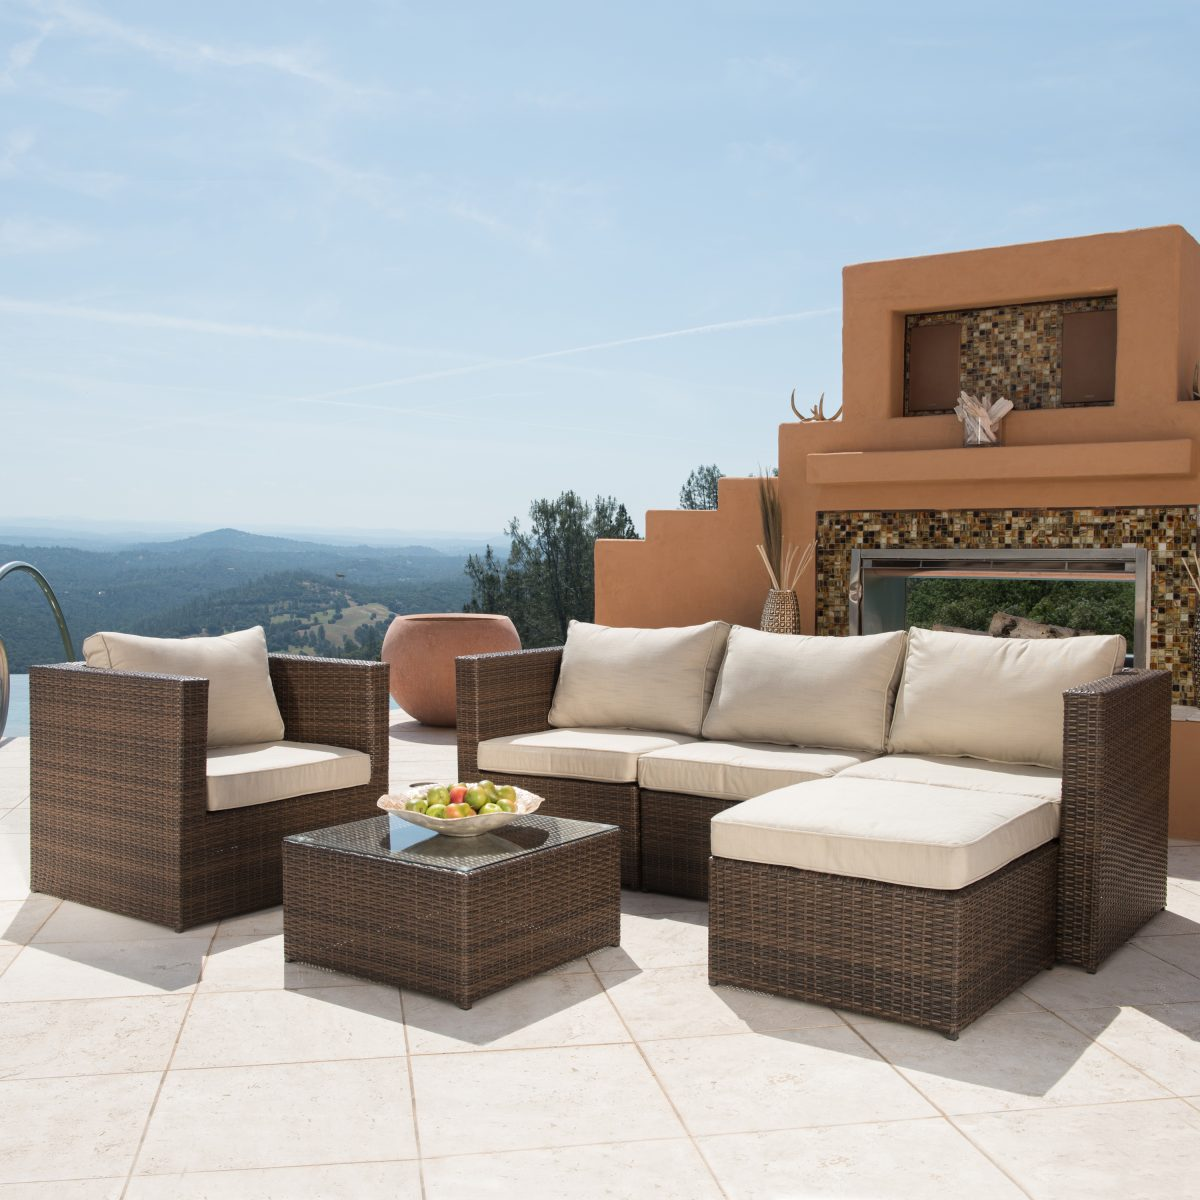 Borealis trey 6 piece brown and beige resin wicker outdoor furniture set with glass top